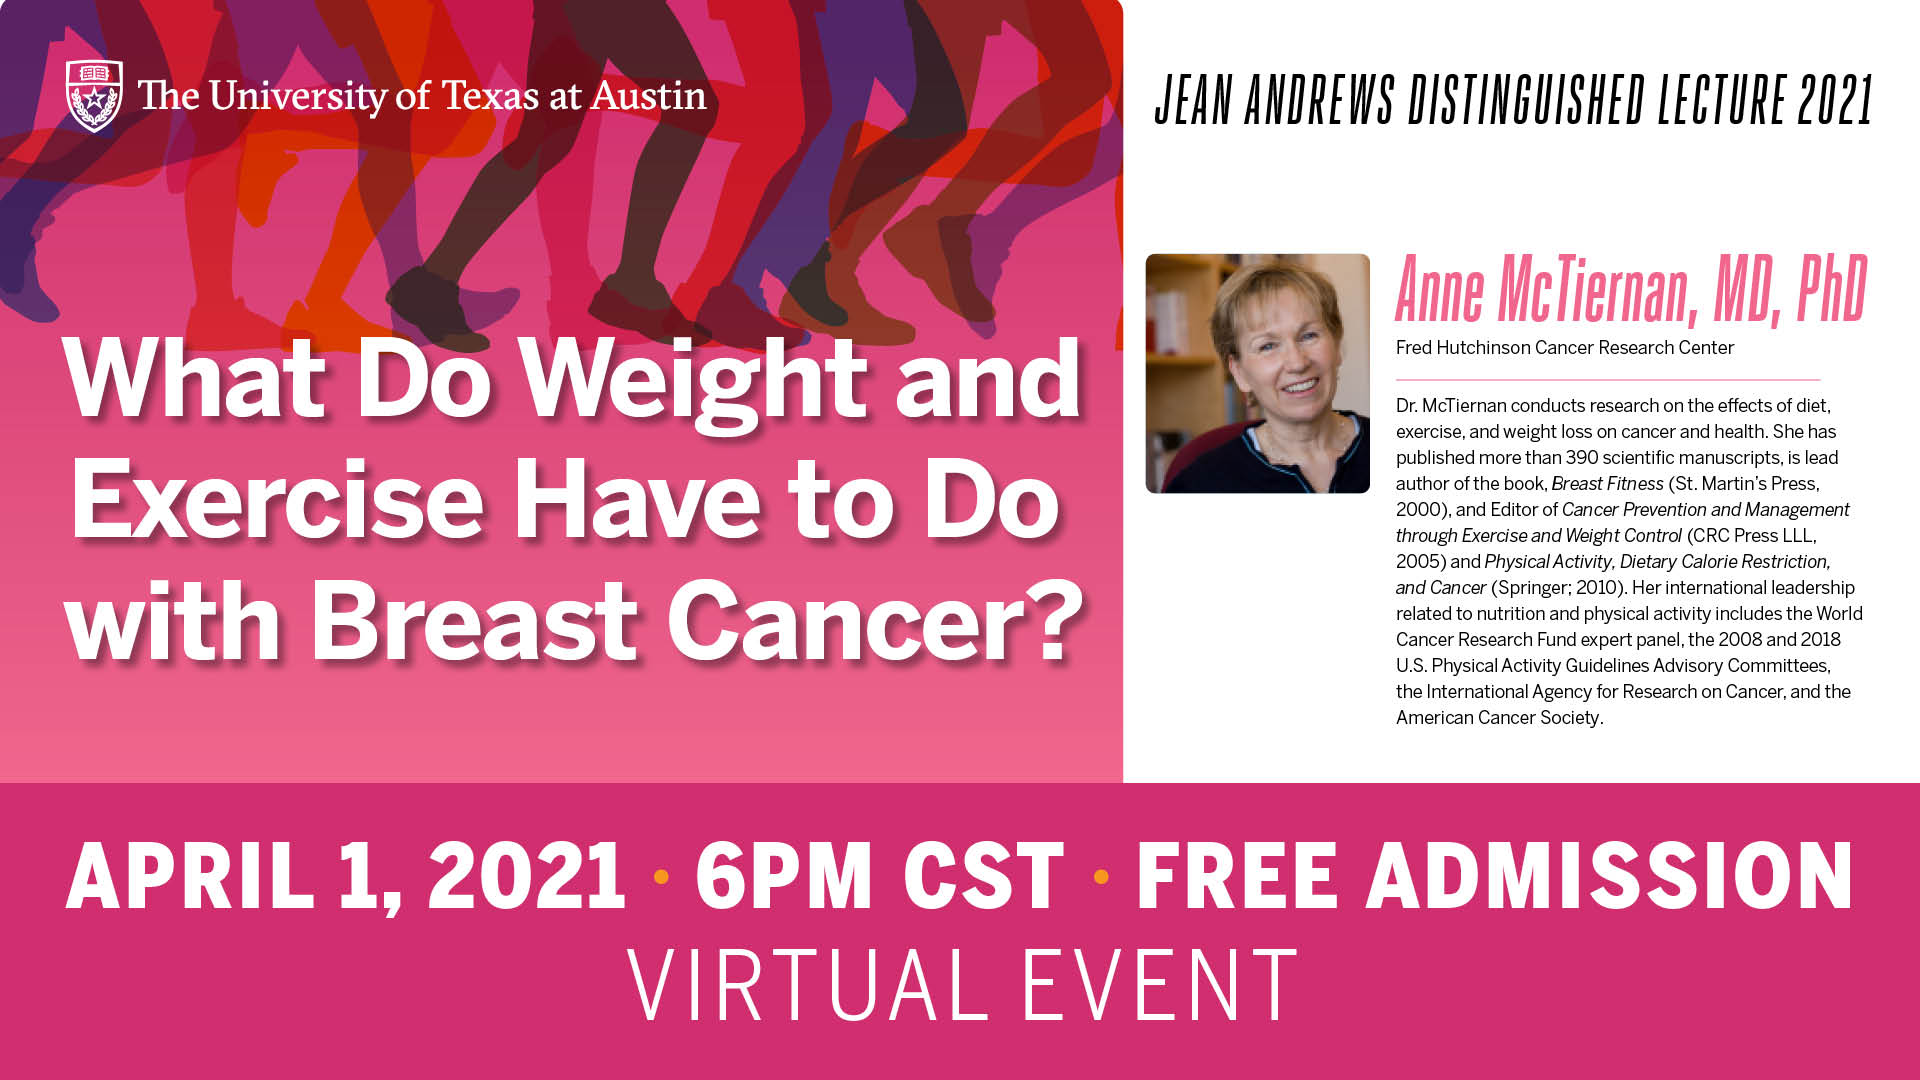 What Do Weight and Exercise Have to Do with Breast Cancer? by Anne McTiernan, M.D., Ph.D.